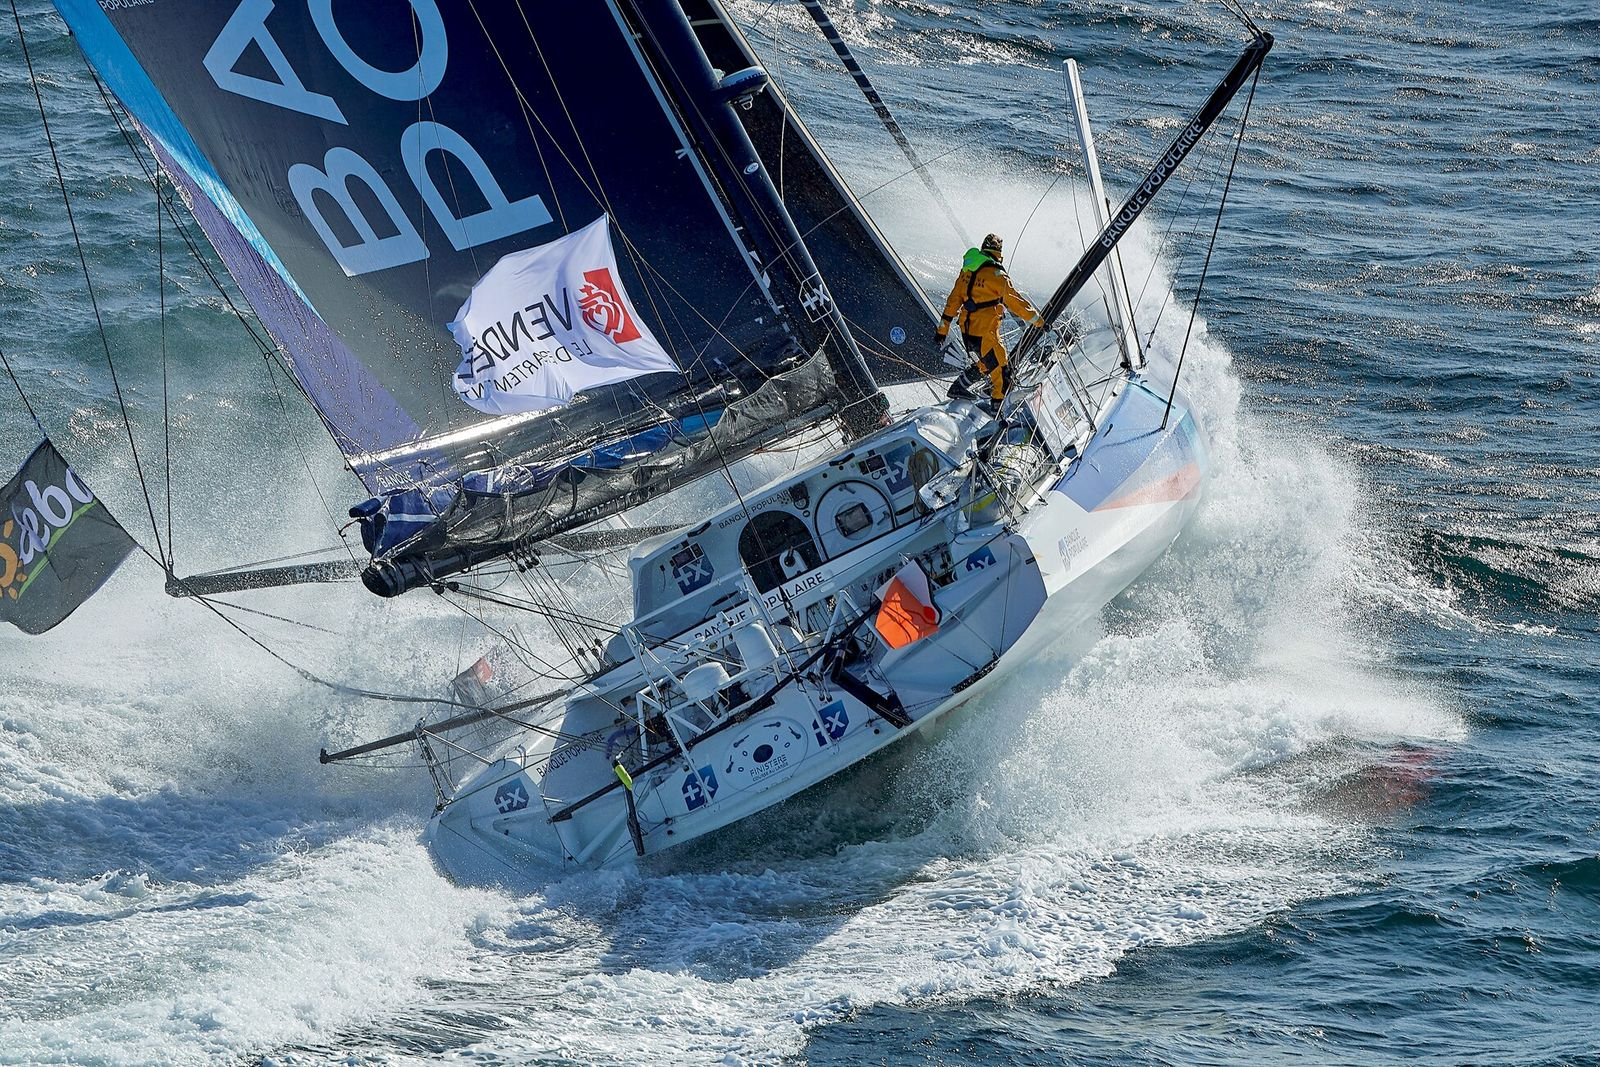 Clarisse Crémer, 30, on Banque Populaire X tacks across a wave. In the Vendée Globe, skippers ...